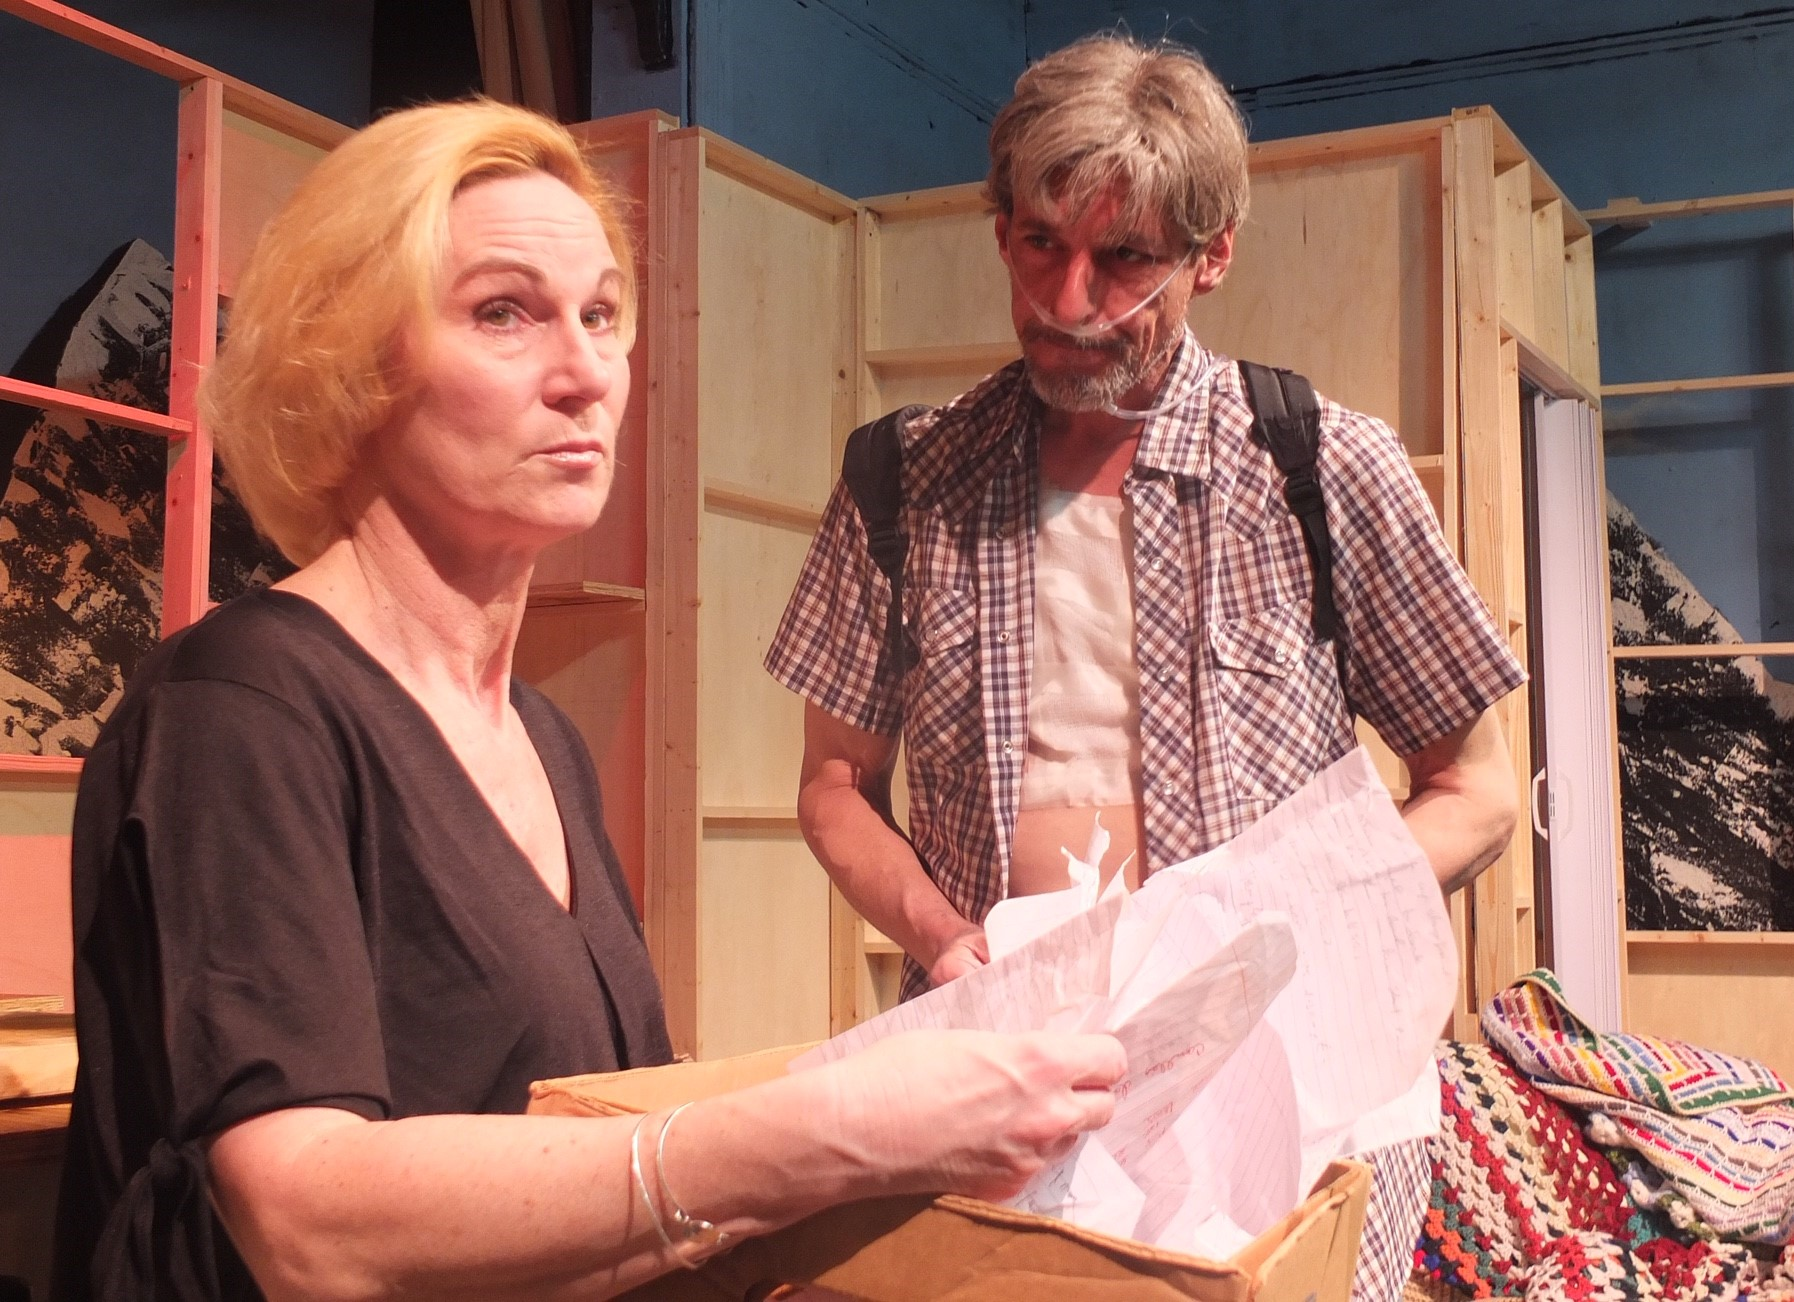 Lisa Ludwig and John Profeta take on the meaty roles of a divorced couple brought together by a crisis in 'Annapurna' at New Phoenix Theatre. (Photo by Lawrence Roswell)